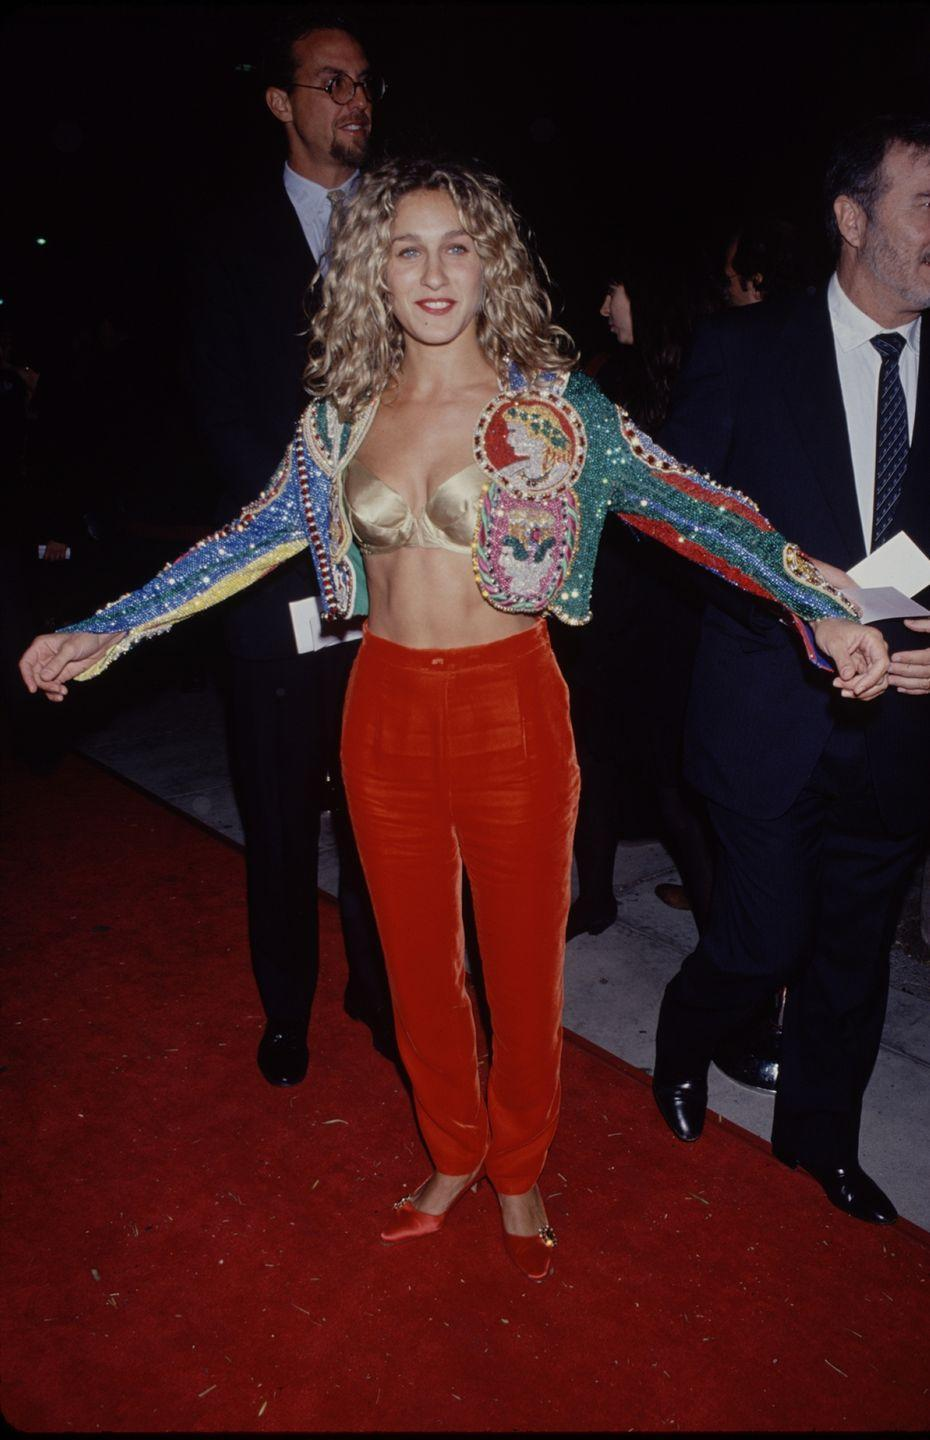 <p>Yes, Carrie Bradshaw wears some truly OTT looks in <em>Sex and the City</em>, but none rival this one that SJP wore in '95. The metallic bra? The beaded jacket? The satin pumps? There is so much happening here that I am truly overwhelmed. </p>